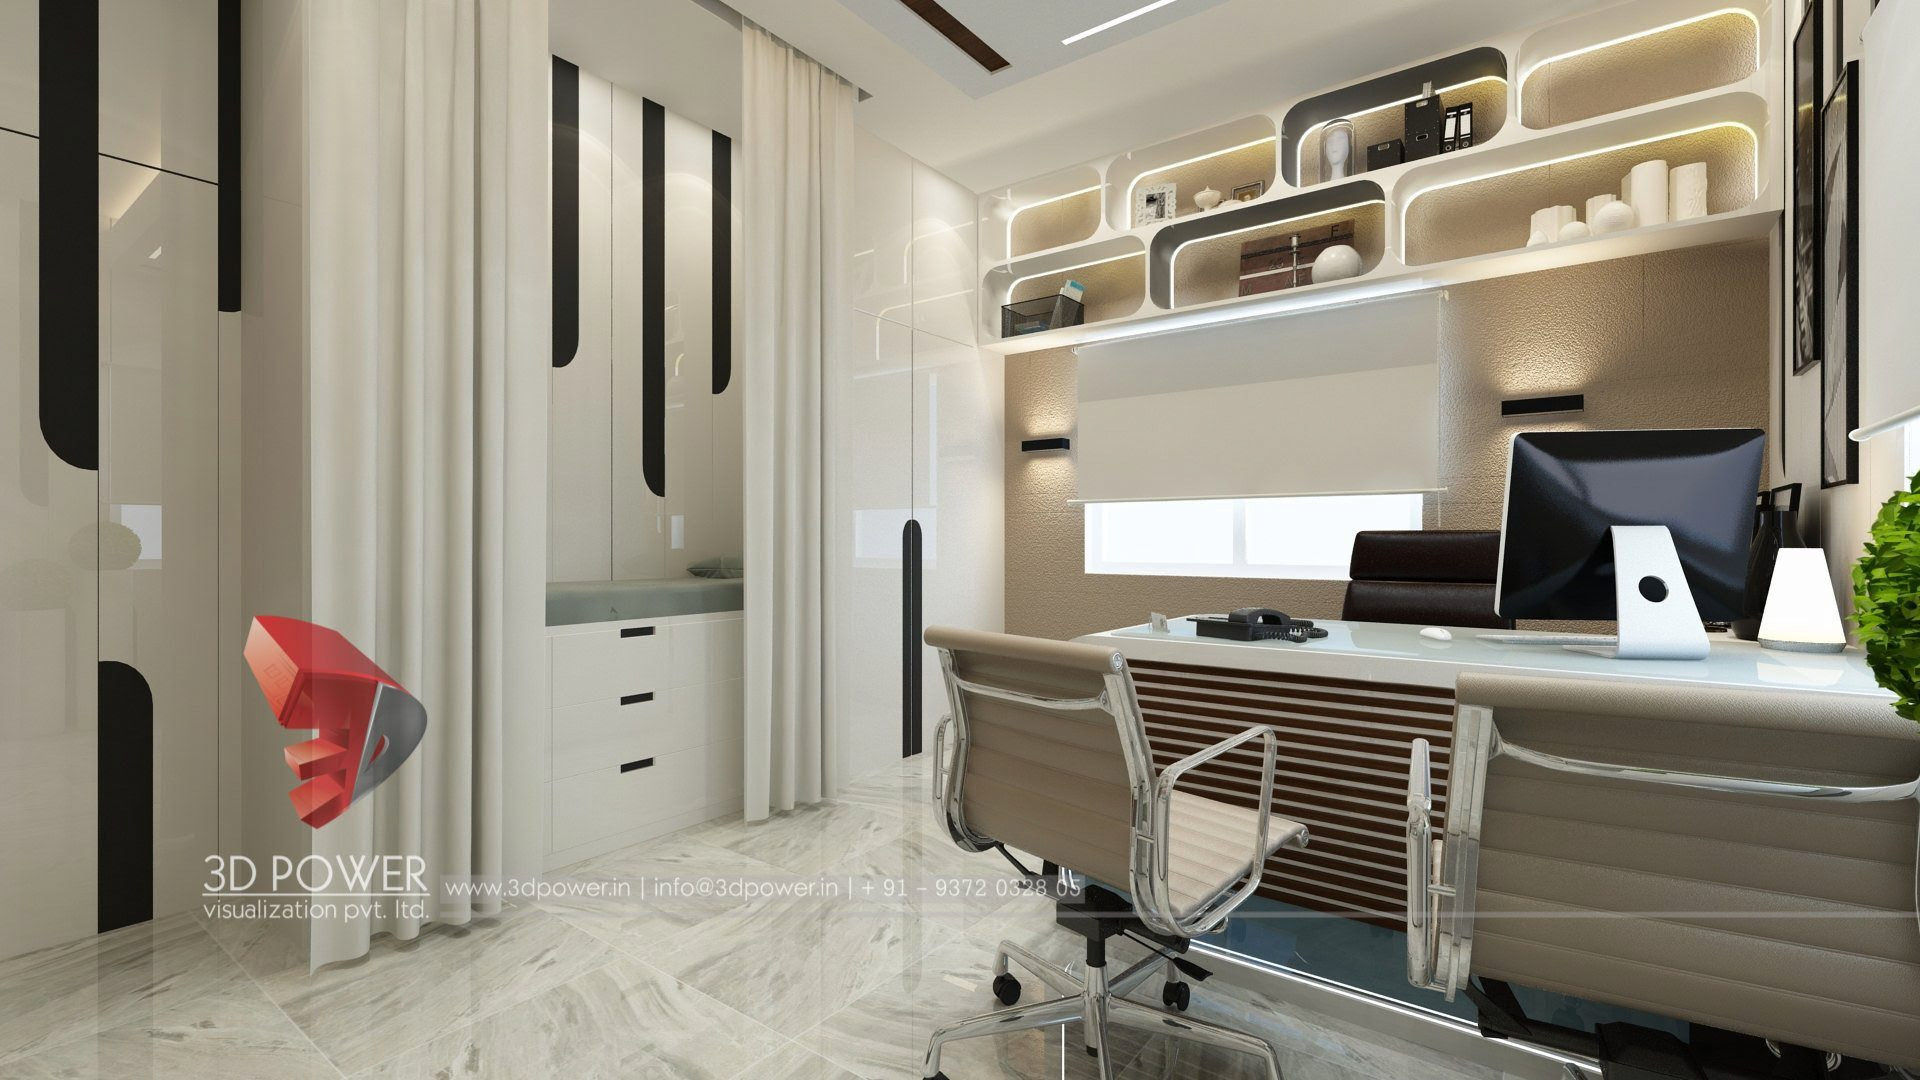 3d Interior Rendering 3d Power Visualization Company